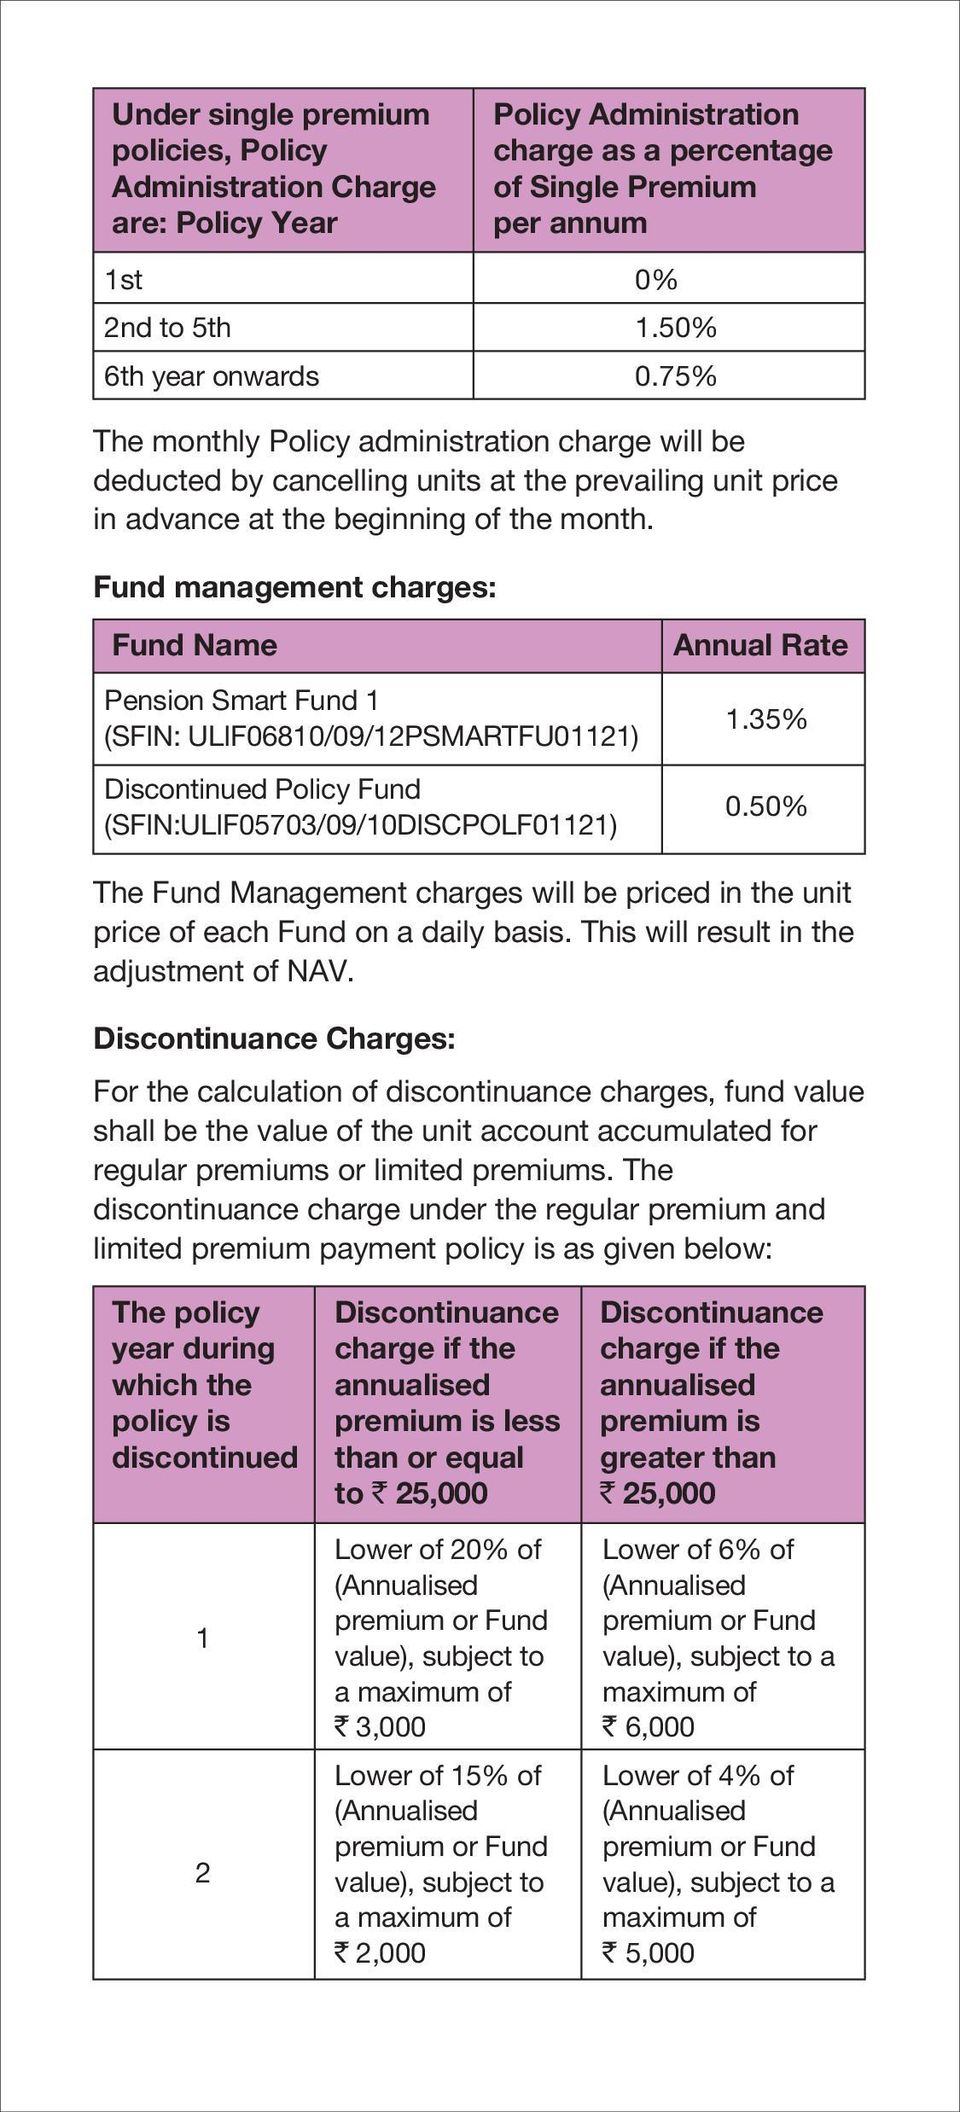 Fund management charges: Fund Name Pension Smart Fund 1 (SFIN: ULIF06810/09/12PSMARTFU01121) Discontinued Policy Fund (SFIN:ULIF05703/09/10DISCPOLF01121) Annual Rate 1.35% 0.